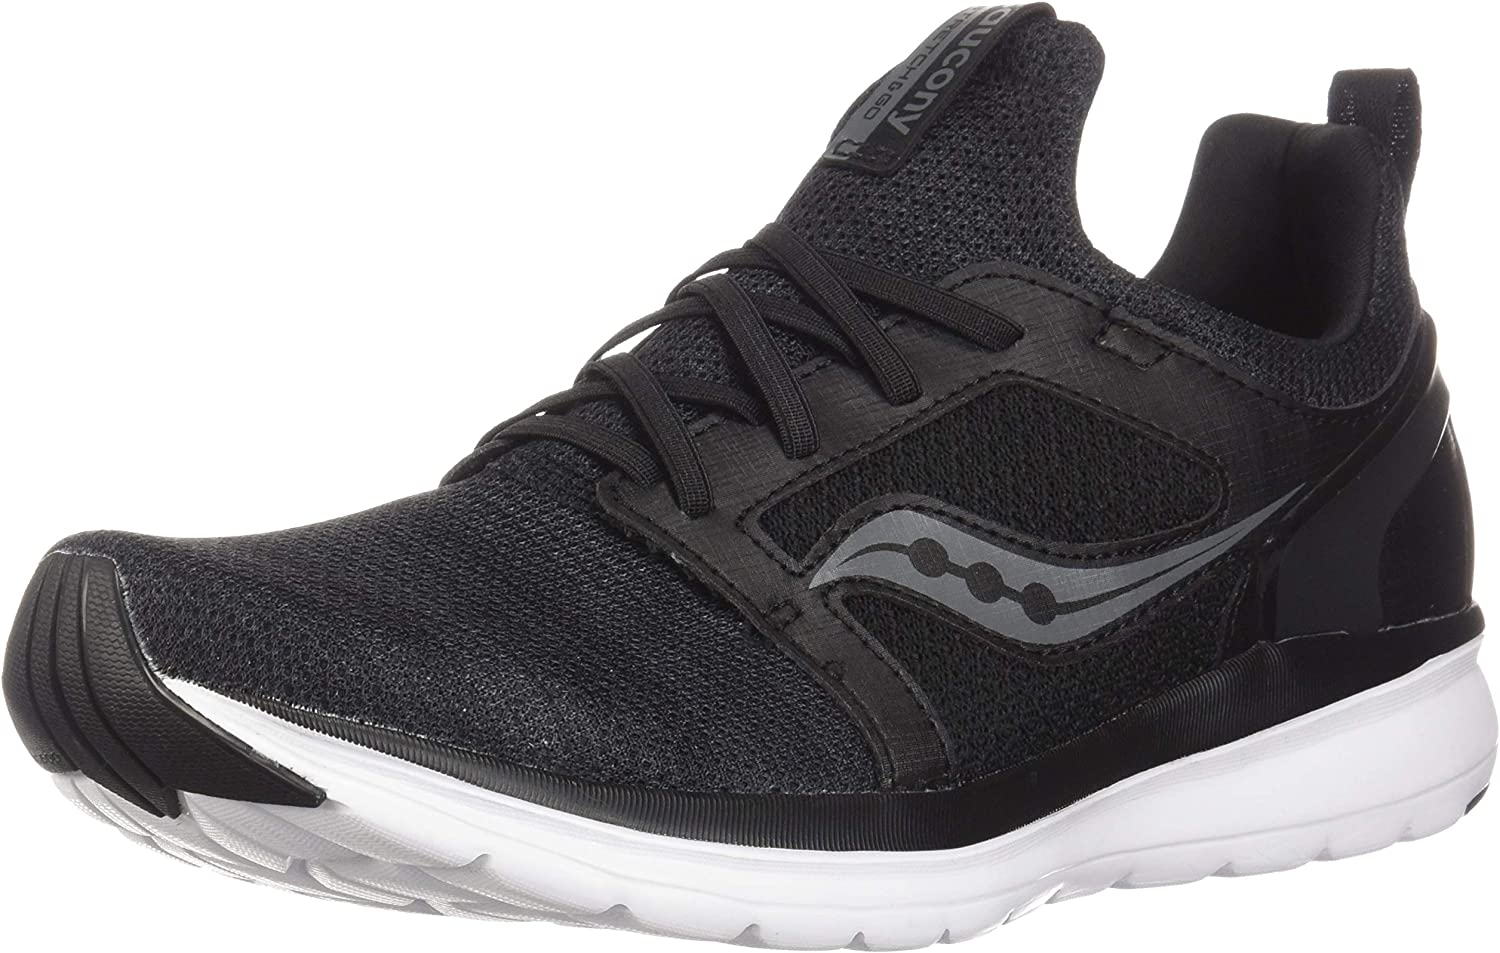 Saucony Men's Stretch & Go Ease Sneakers